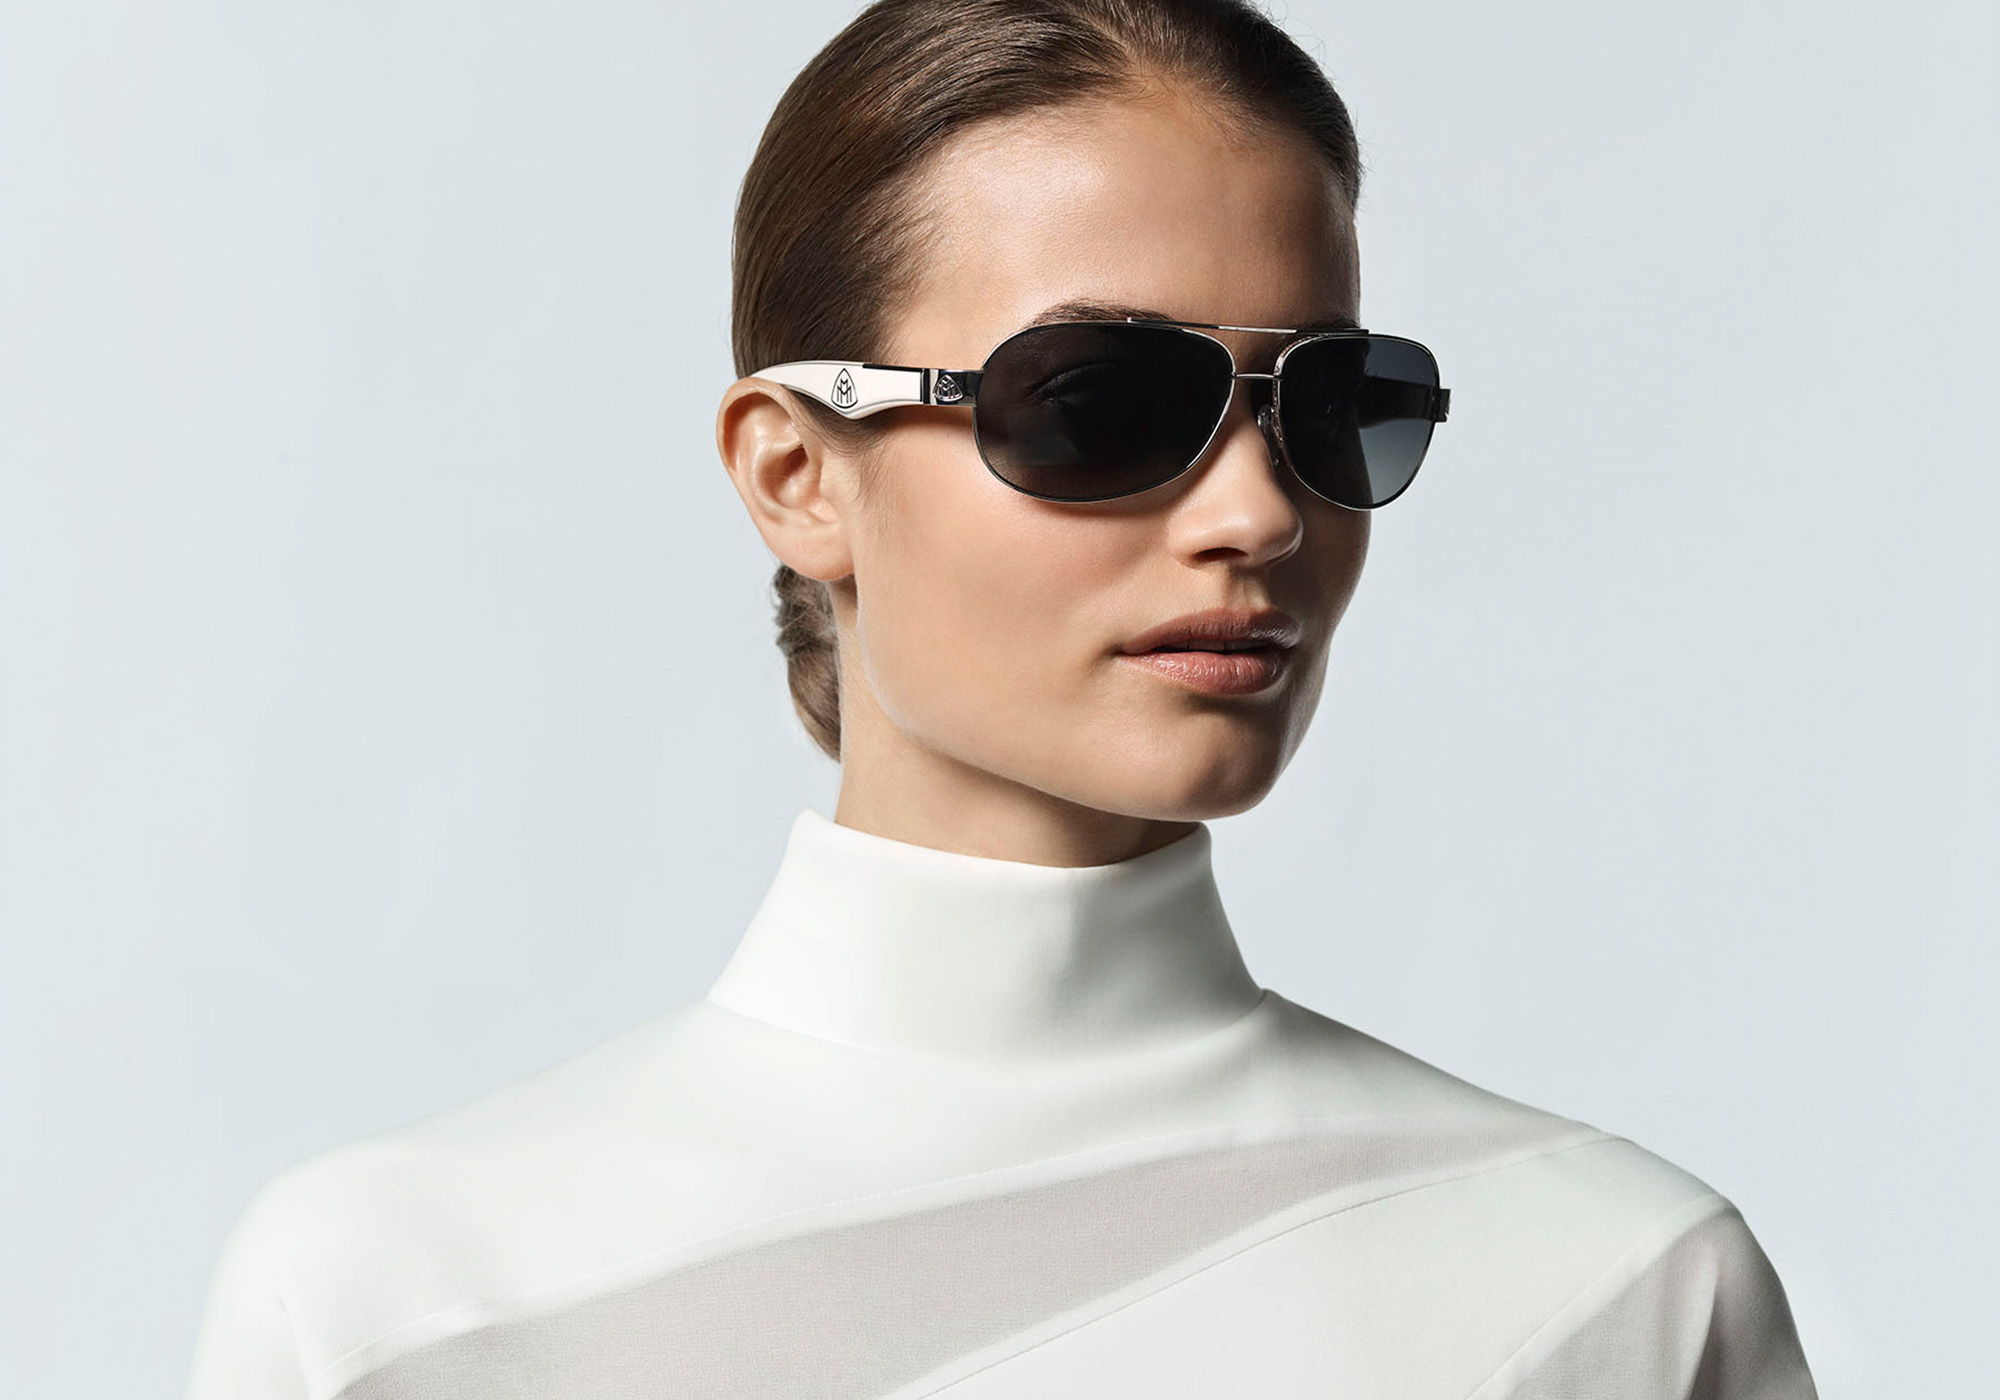 Maybach Glasses | Photographer Olaf Heine